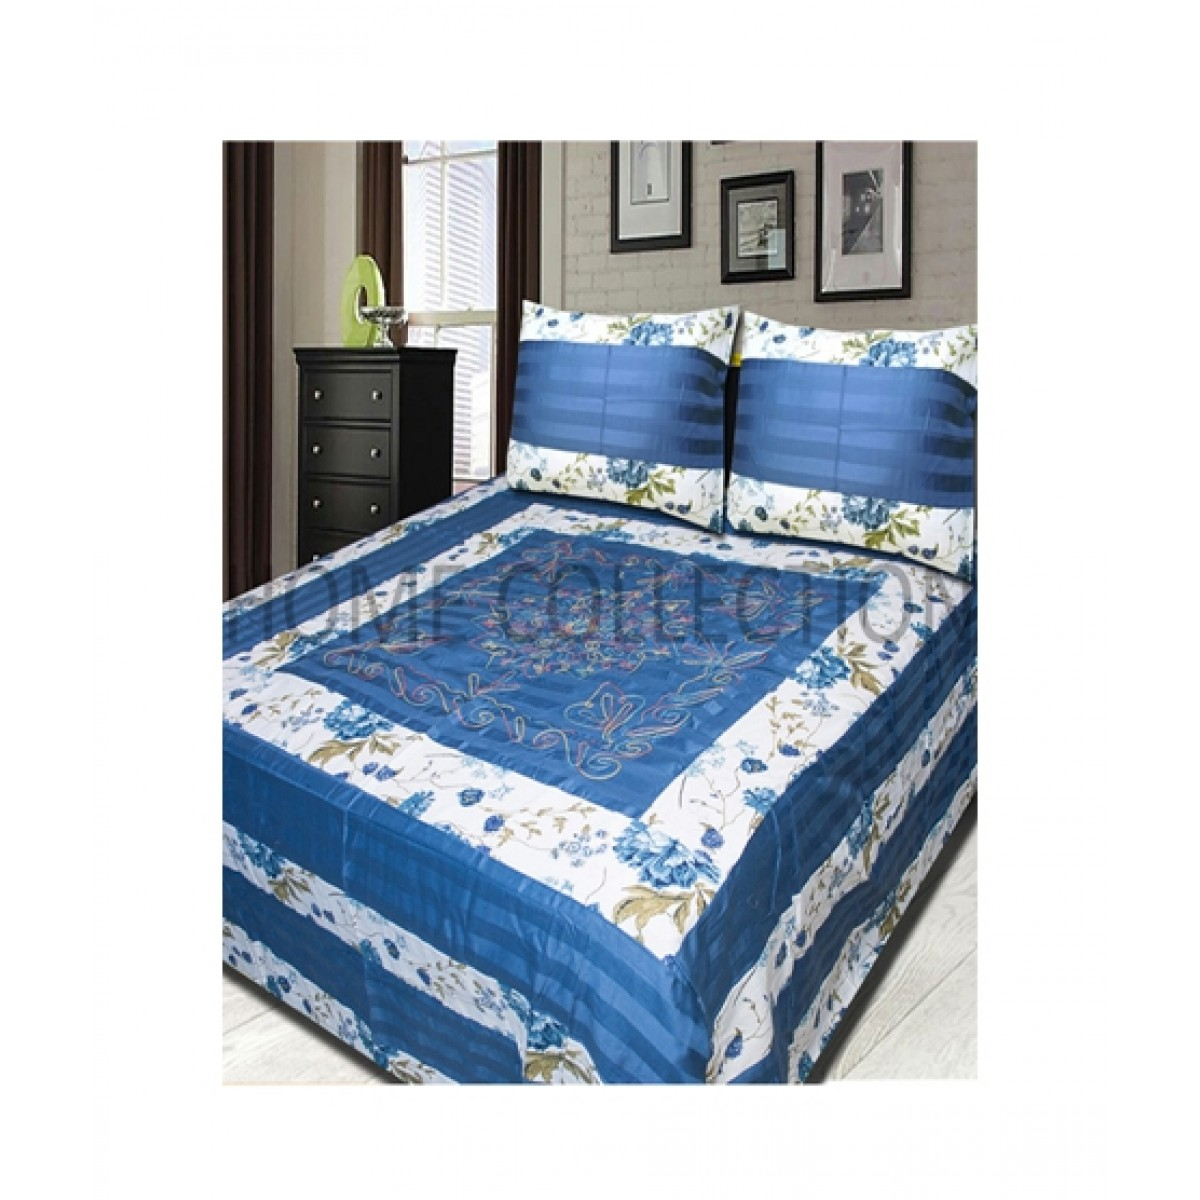 Home Collection Double Bed Sheet Dbap5 Price In Pakistan Buy Home Collection Applique Embroidered Bed Sheet Ishopping Pk